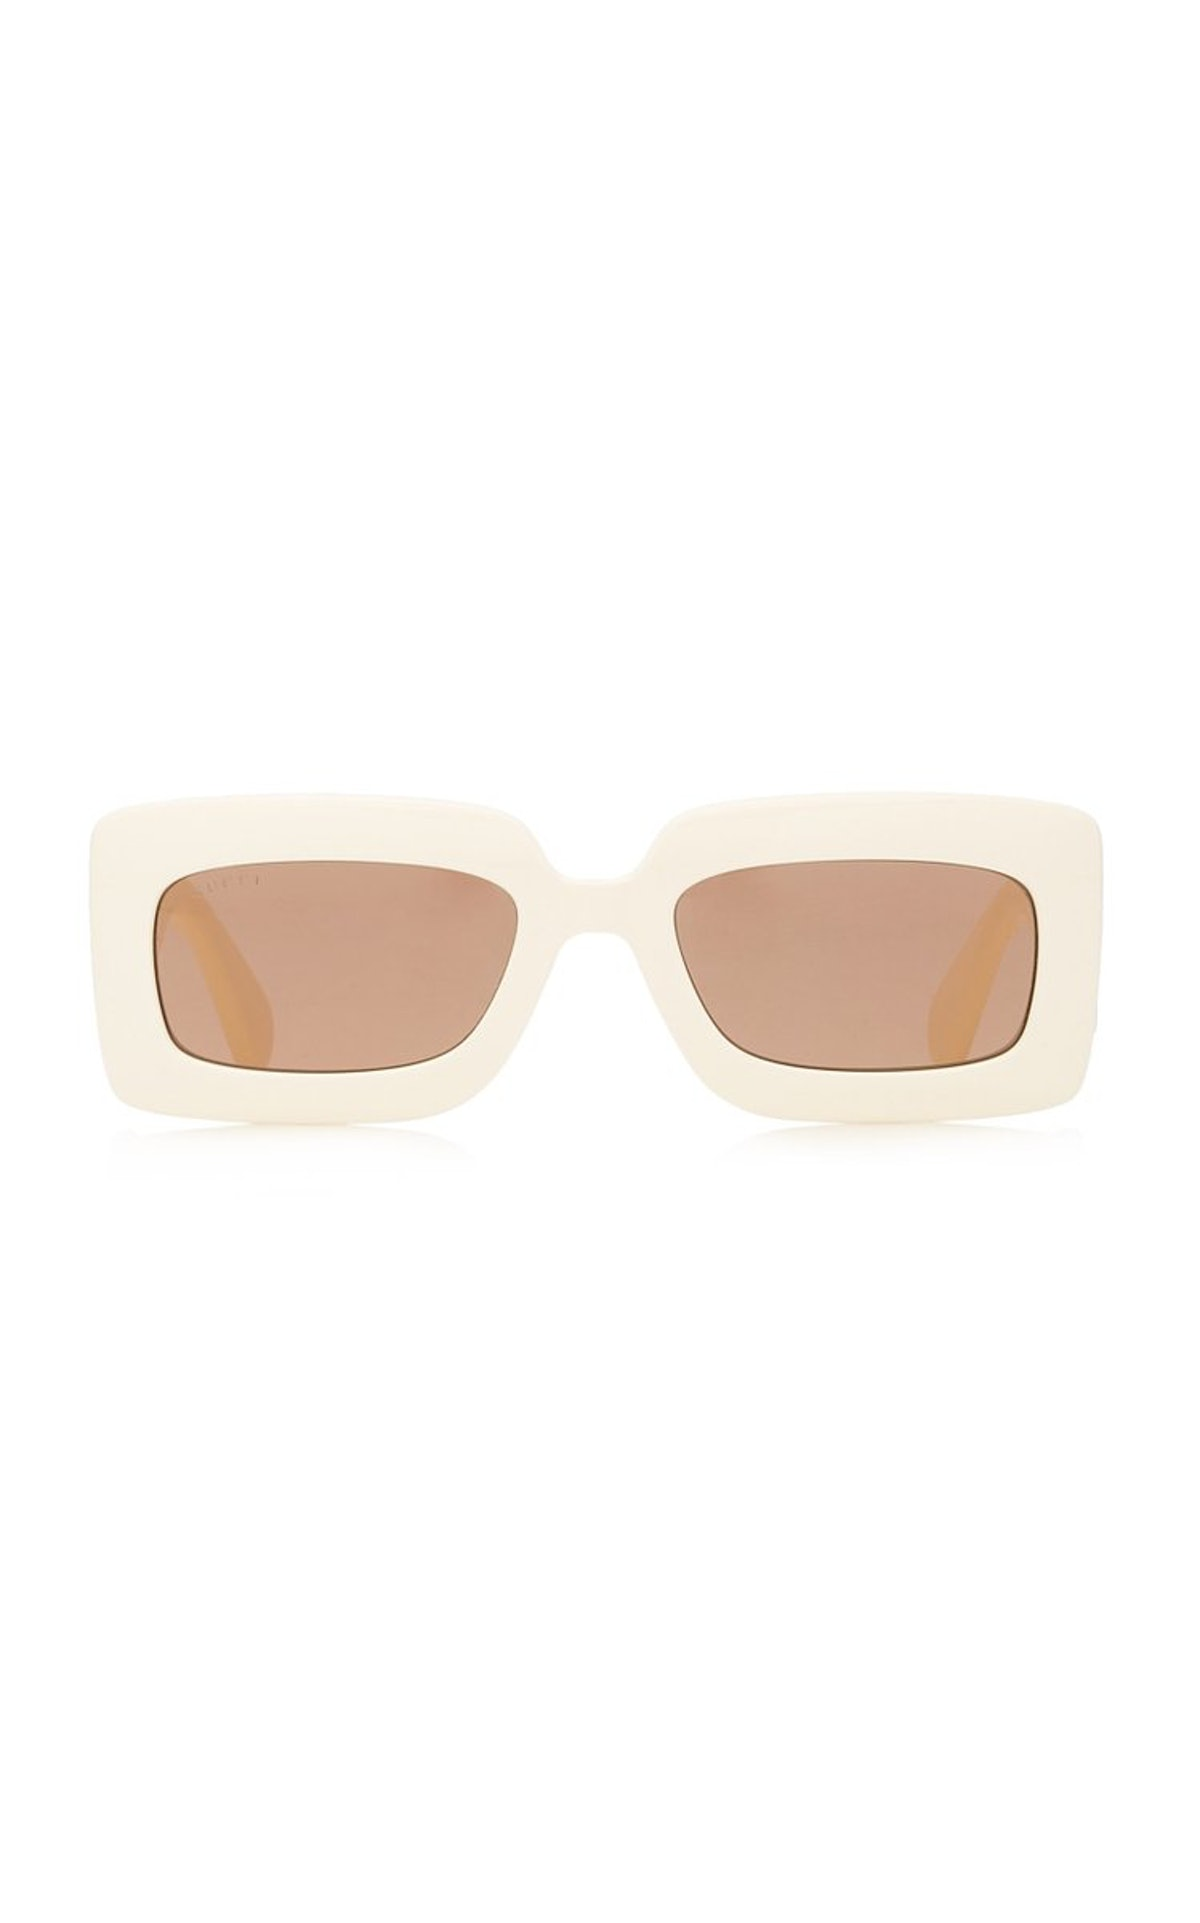 Square-Frame Acetate Sunglasses from Gucci.